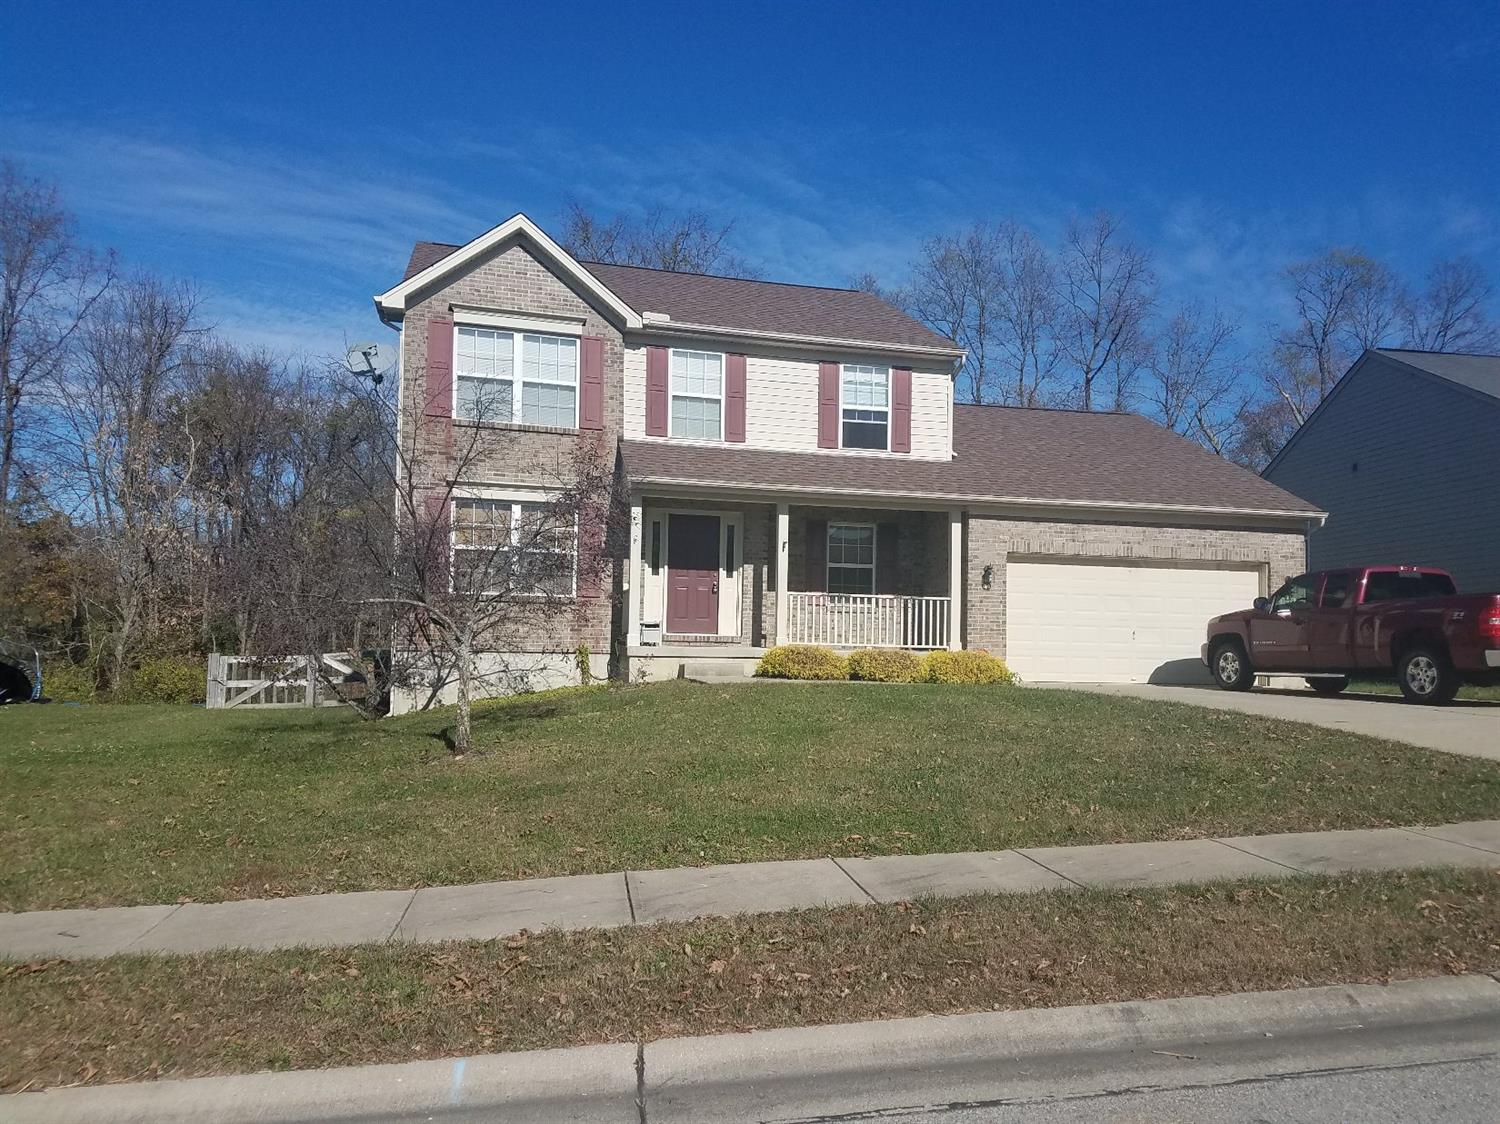 Photo 1 for 1272 Brookstone Dr Walton, KY 41094